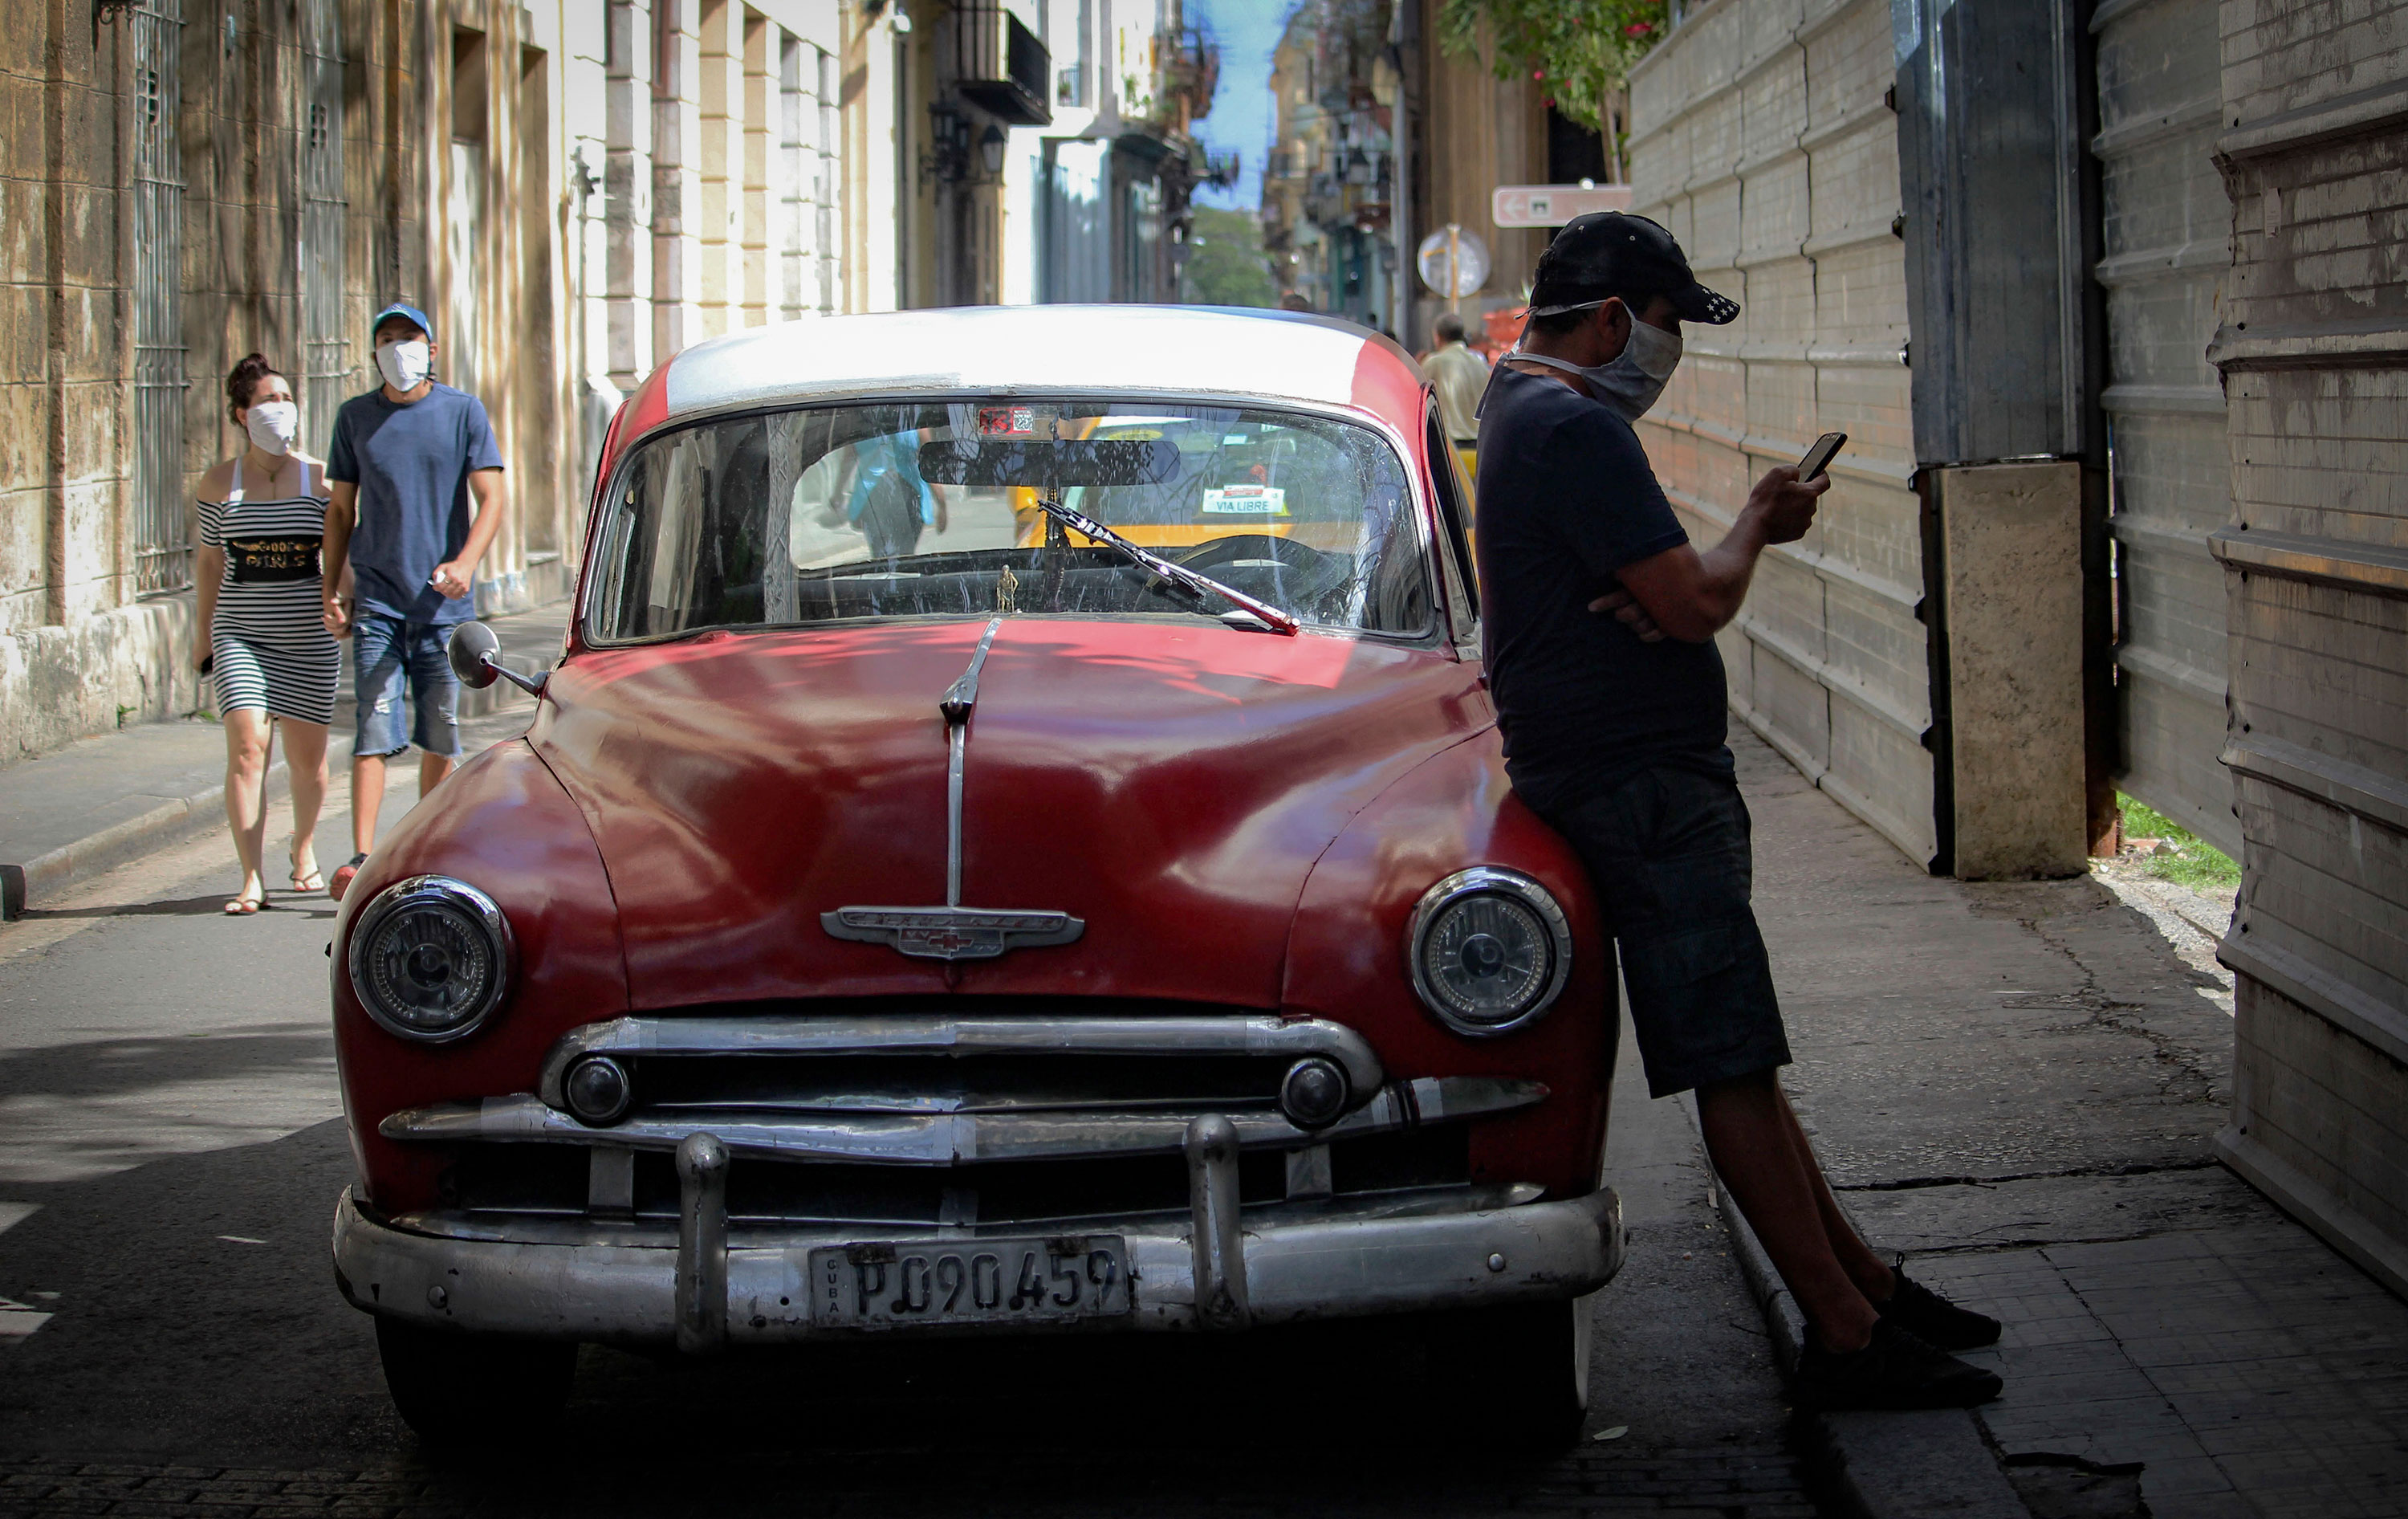 A man wearing a face mask looks at his mobile phone while a couple walks by in Havana, Cuba, on May 18.